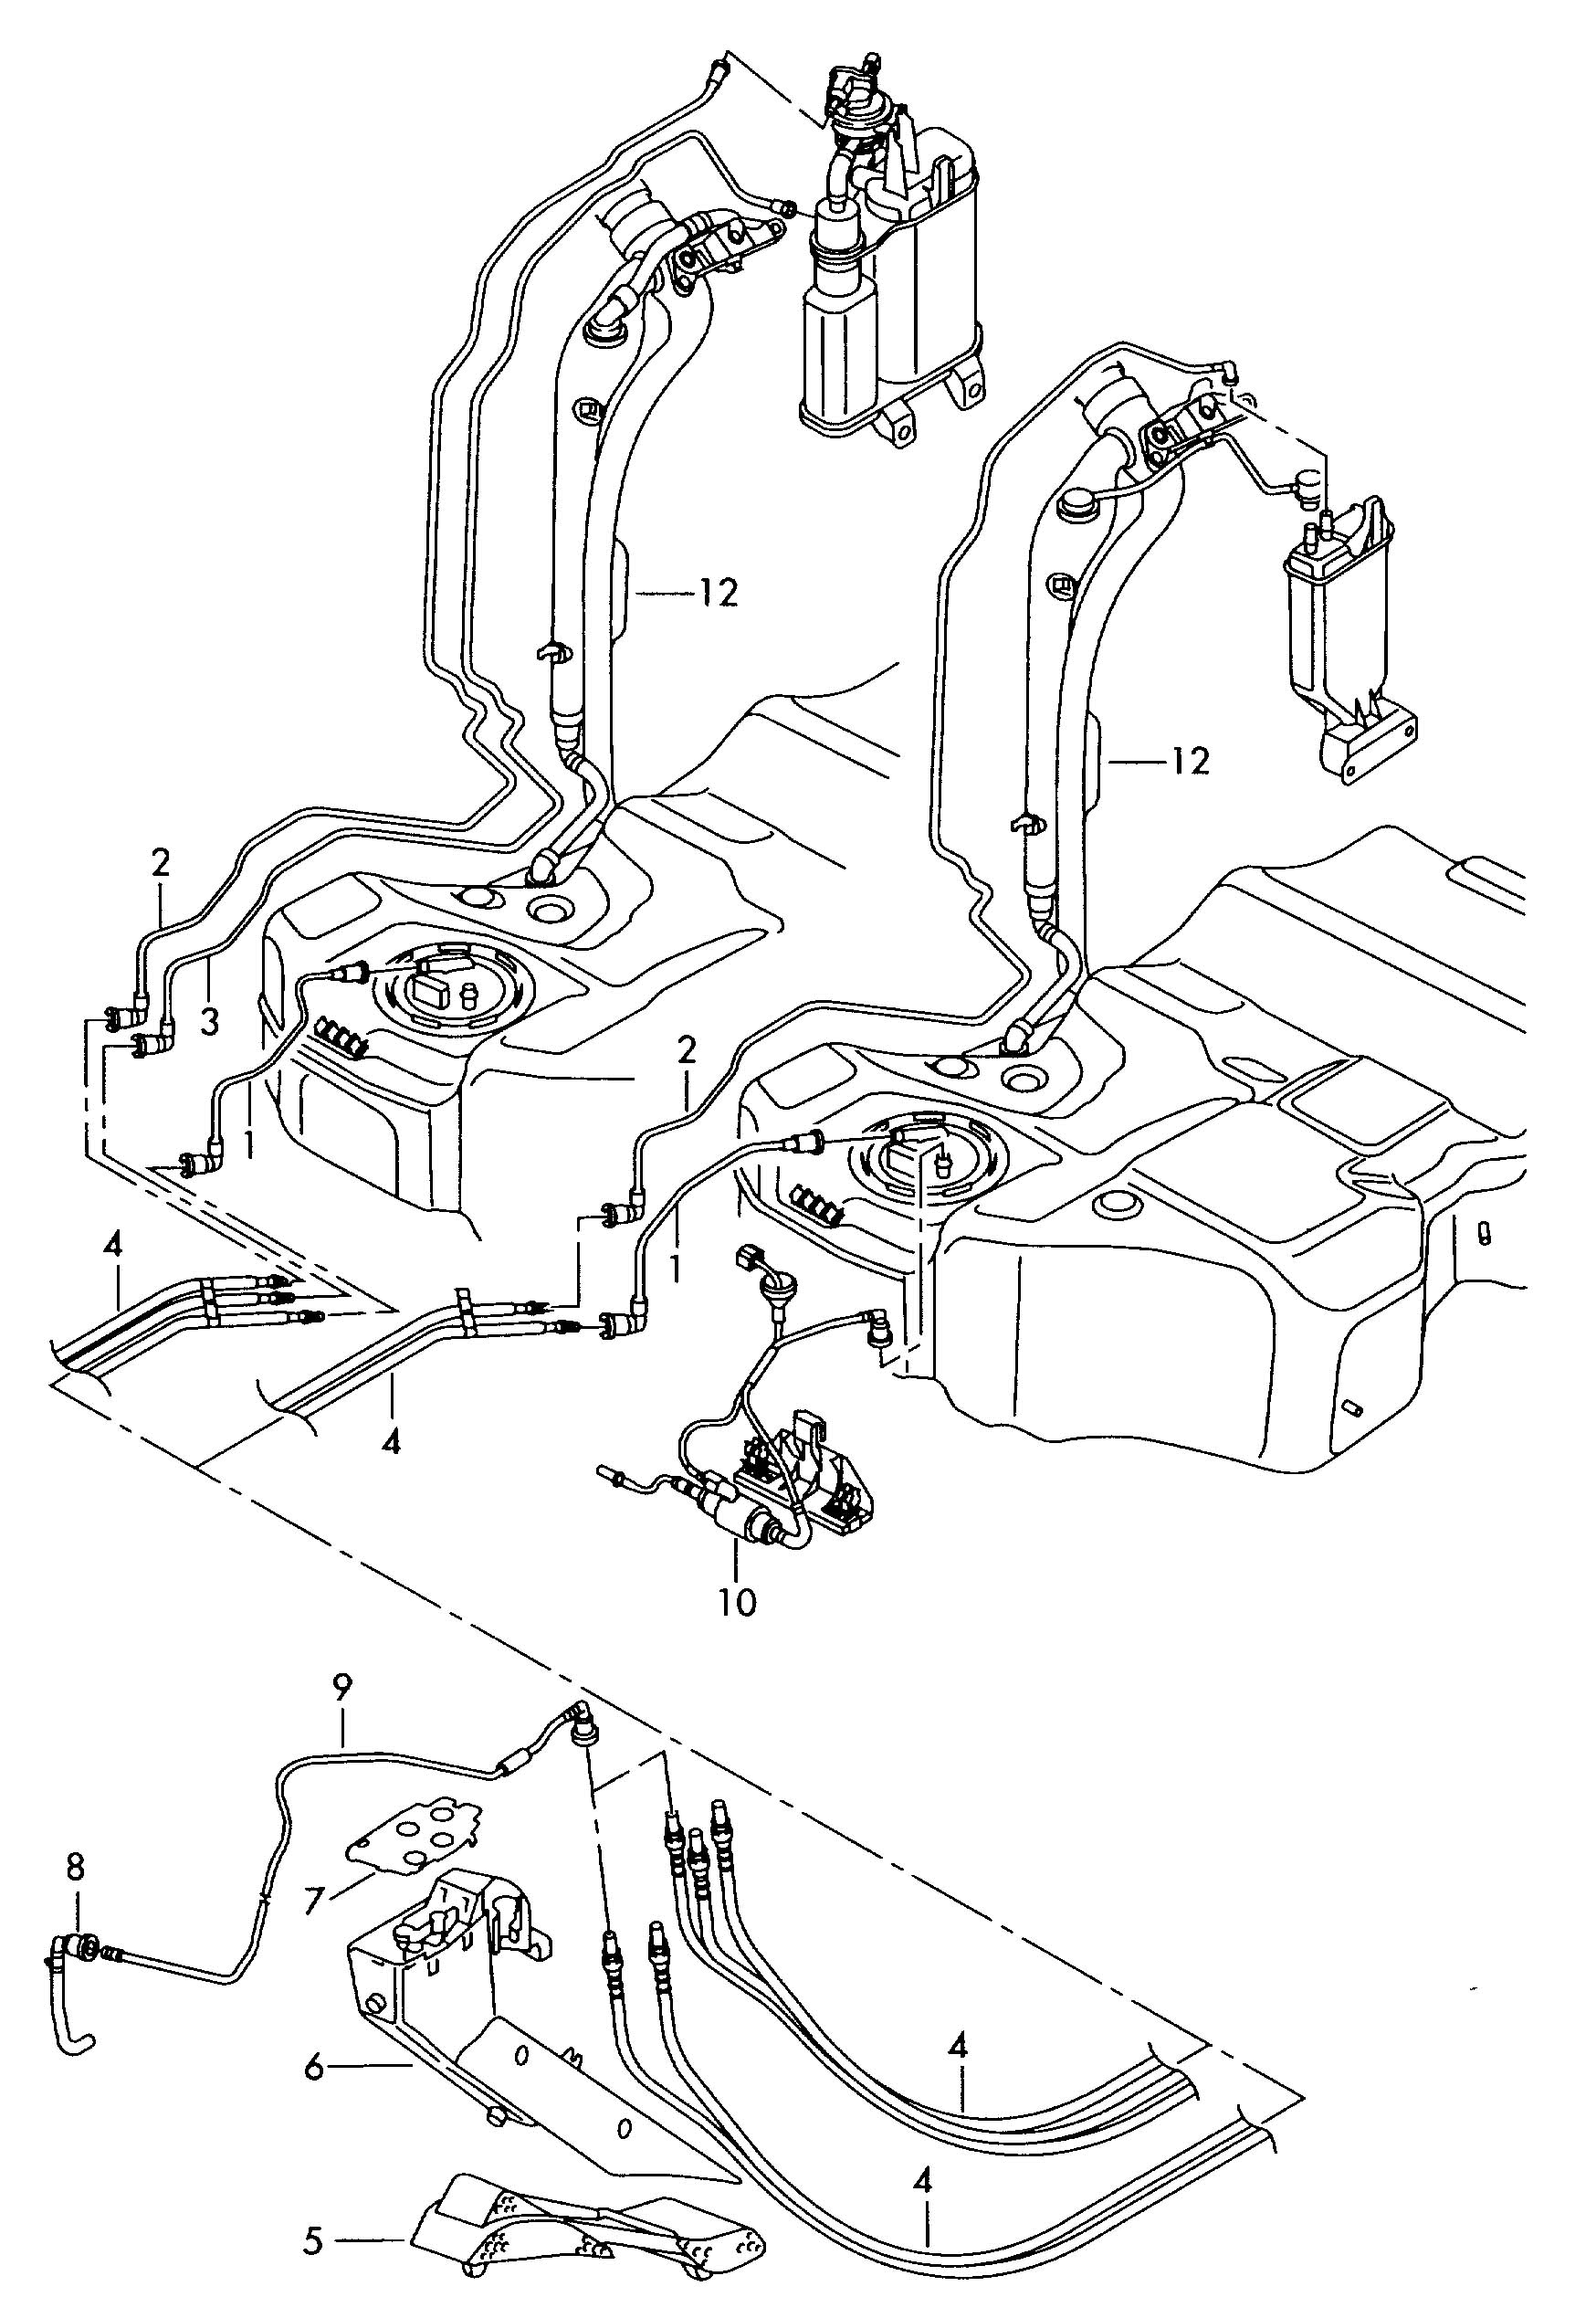 Vw Parts Fuel Lines, Vw, Free Engine Image For User Manual